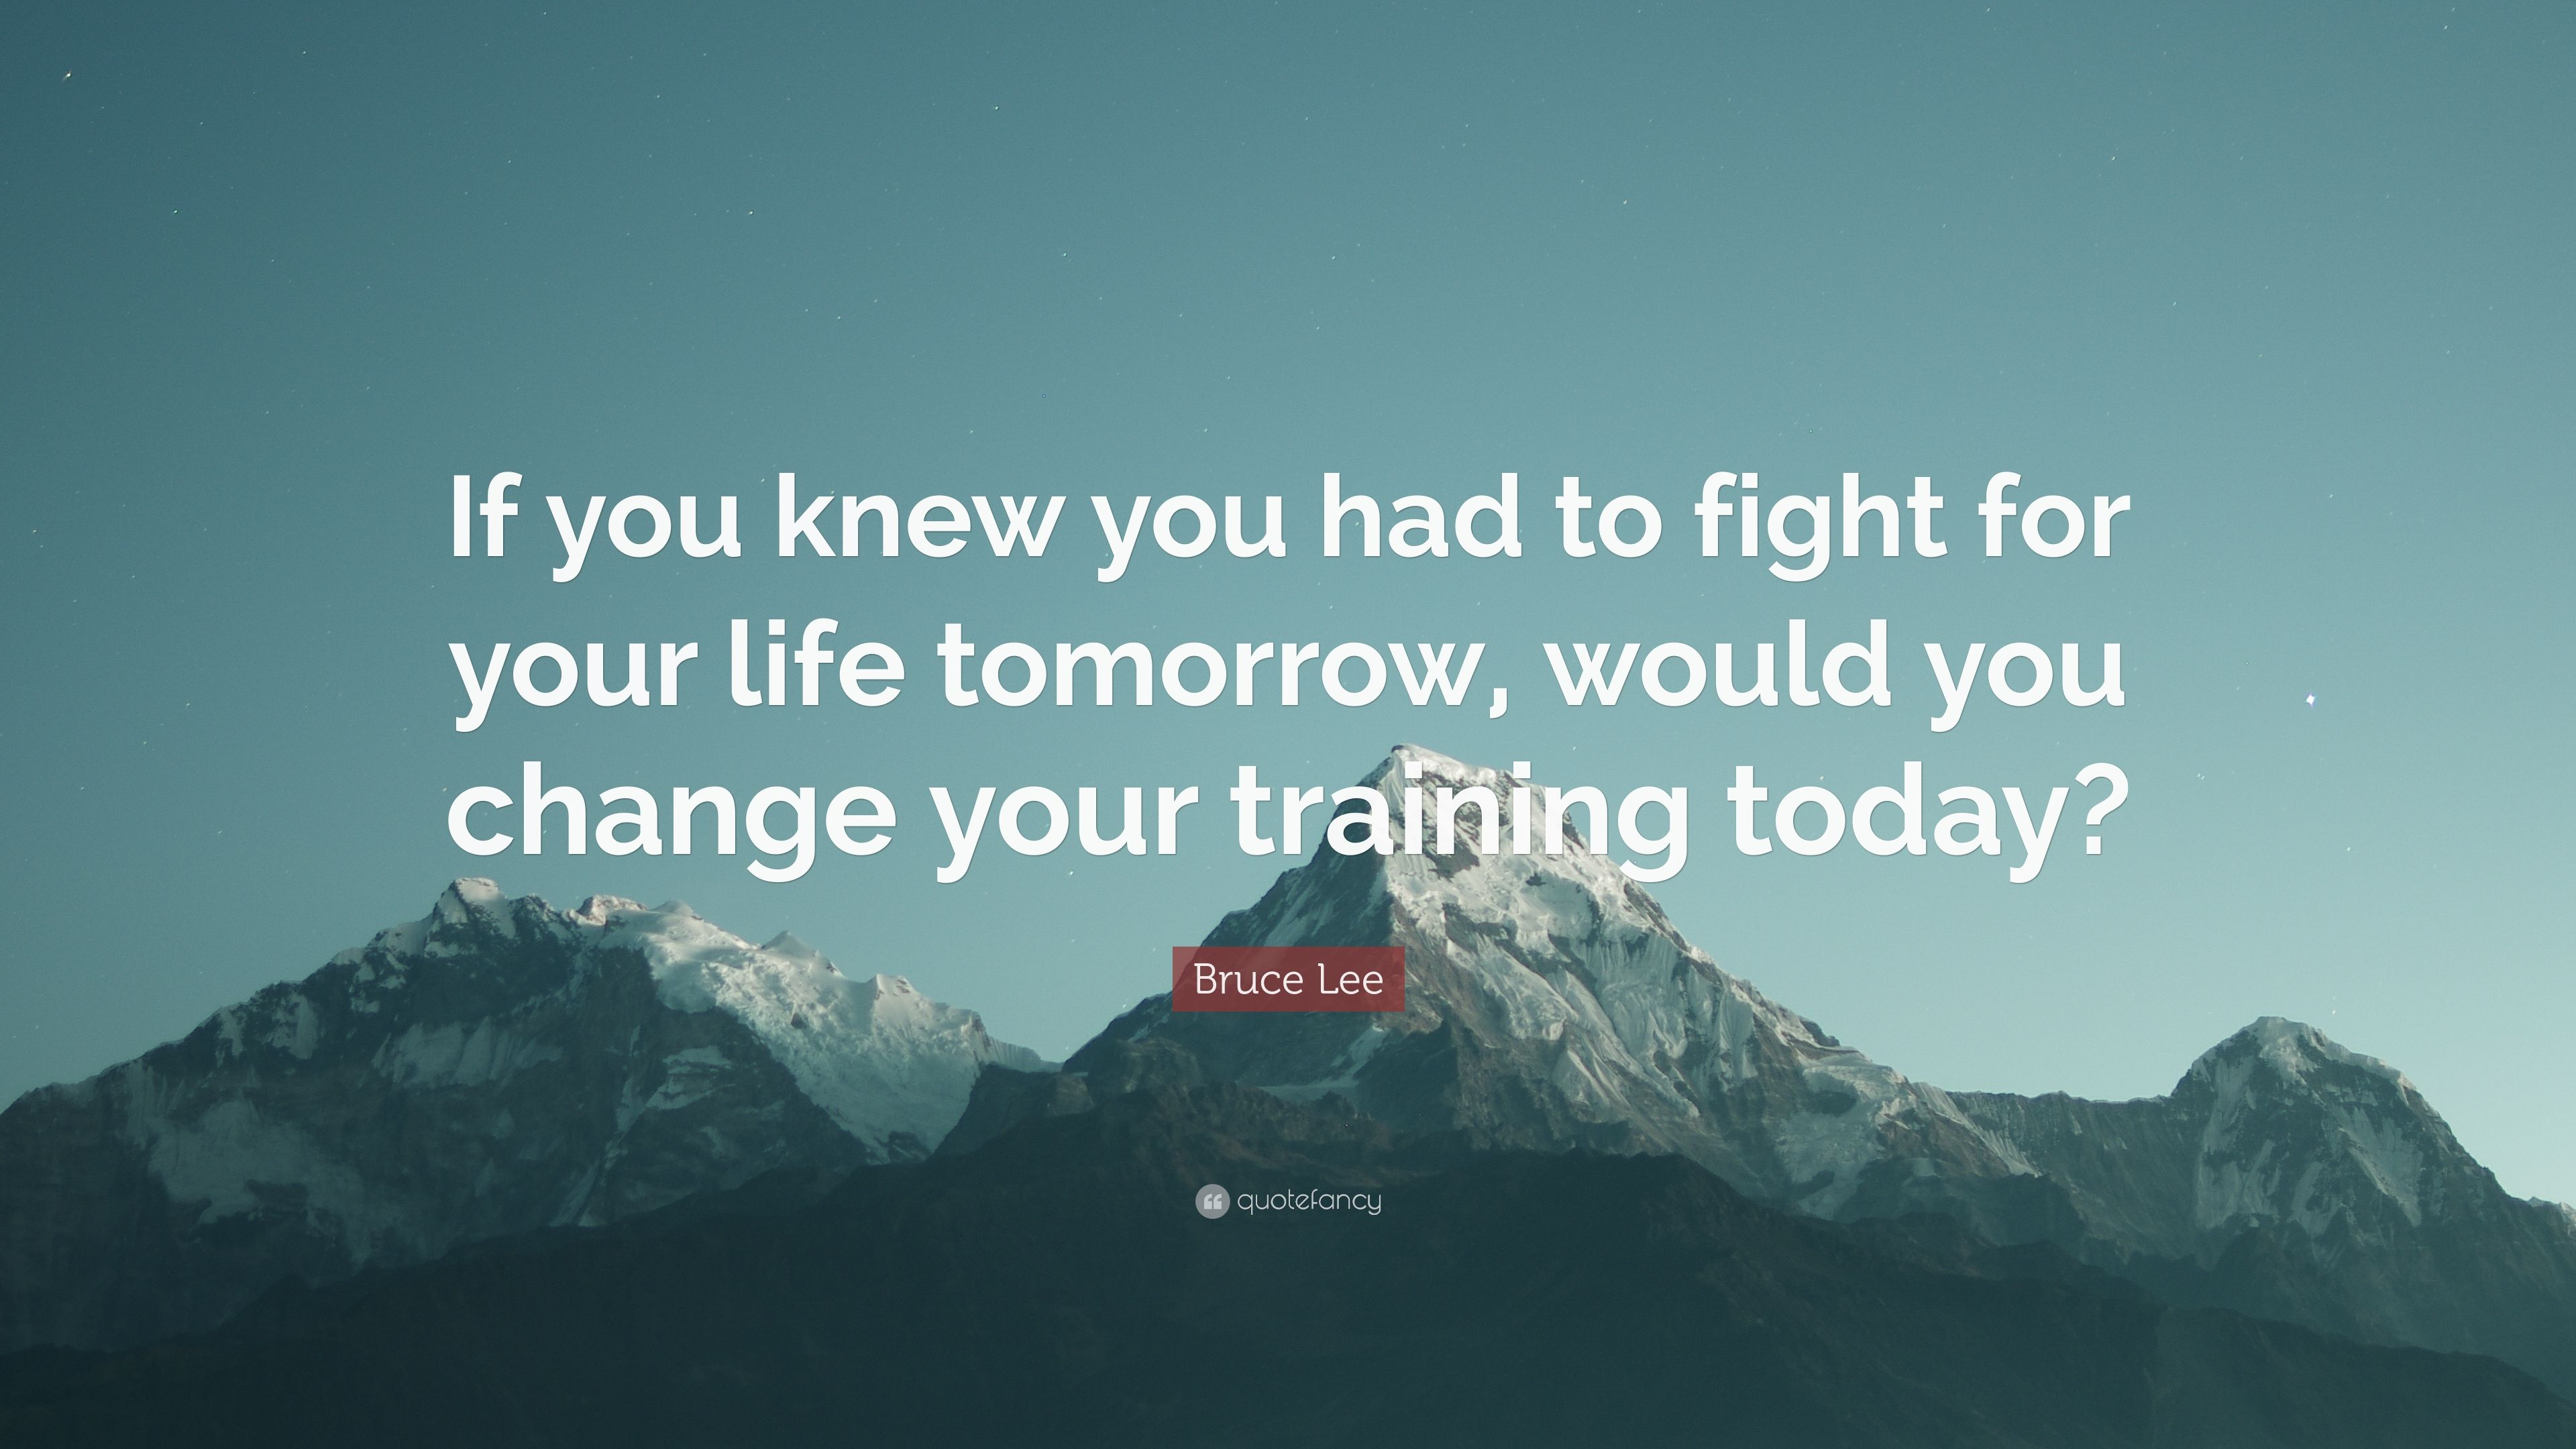 Fight For Your Life Quotes Bruce Lee Quote U201cIf You Knew You Had To Fight